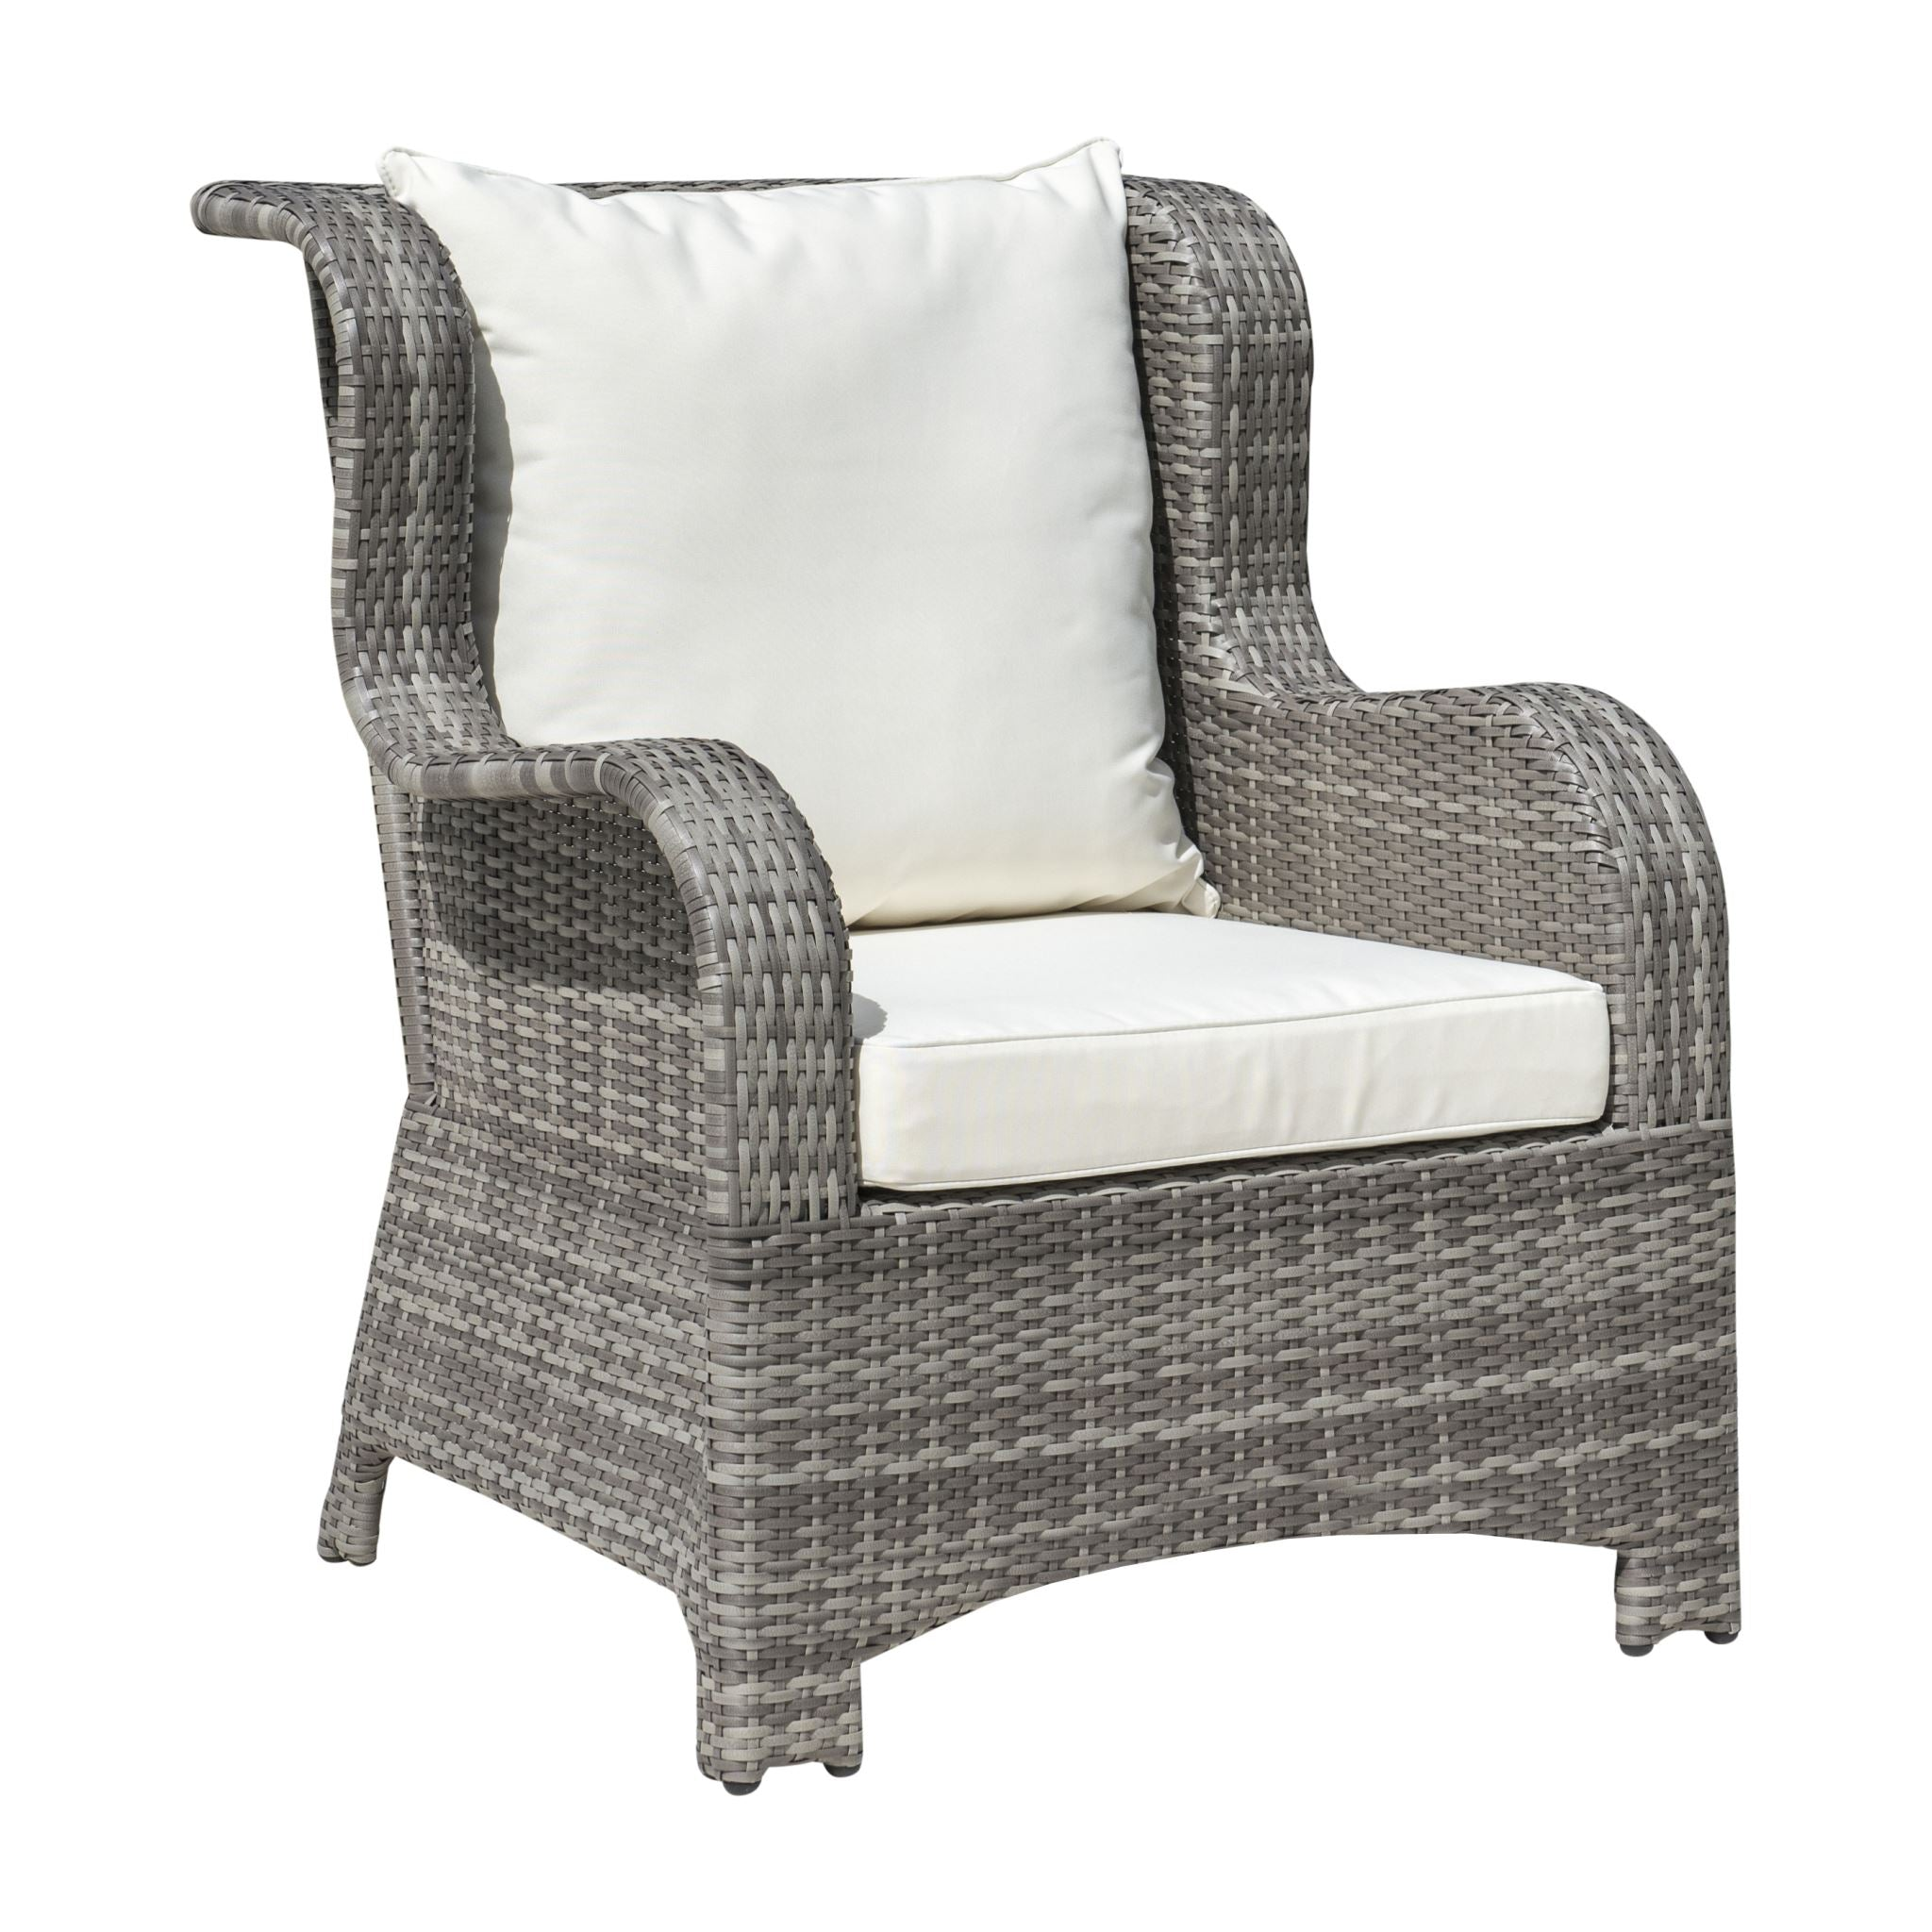 layout occasional furniture chairs arrangement small room living awesome tool chair for ideas spaces